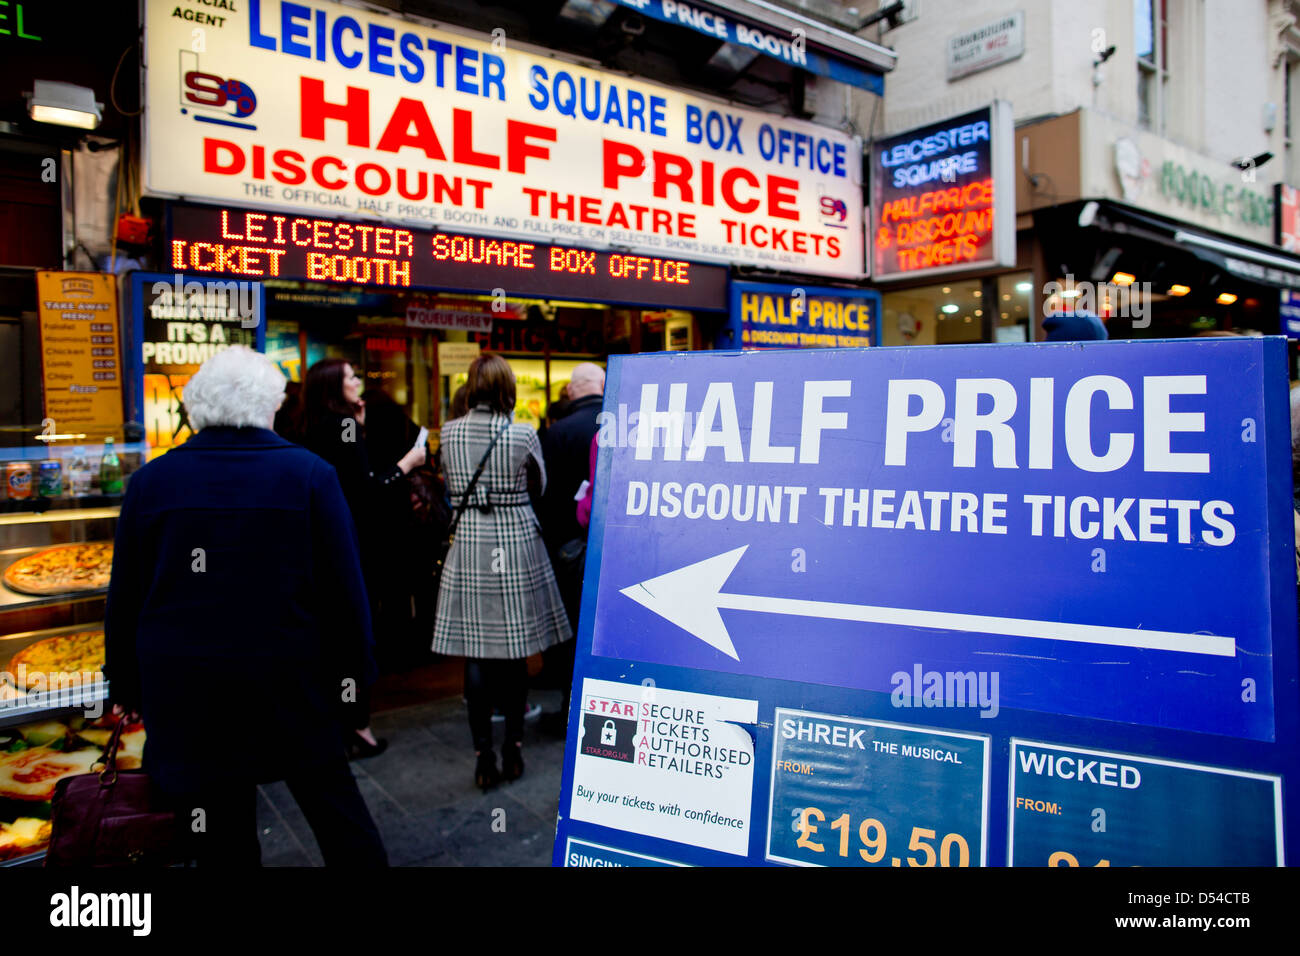 Theatre tickets on sale, Leicester square, London, United Kingdom - Stock Image